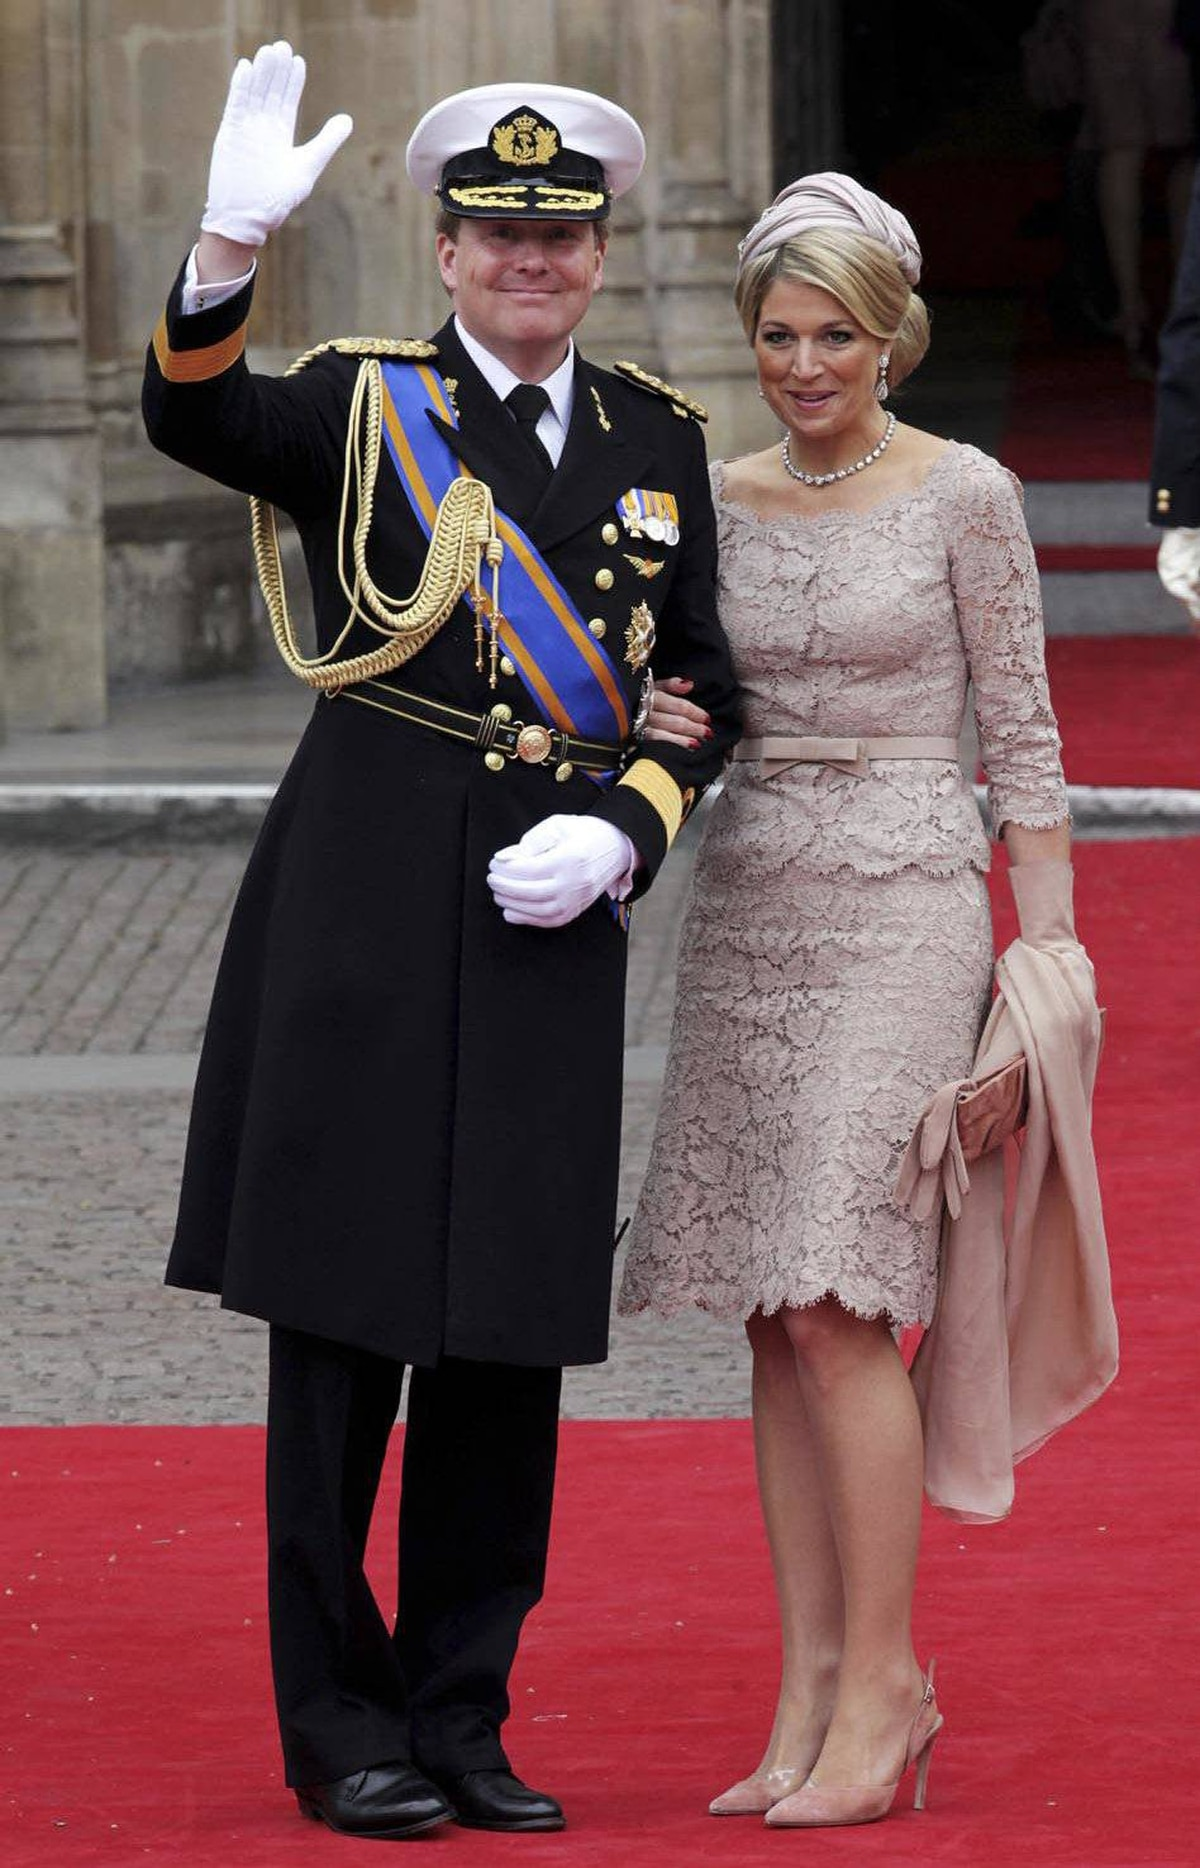 Crown Prince Willem Alexander and Princess Maxima of The Netherlands wave as they arrive to attend the Royal Wedding of Prince William to Catherine Middleton at Westminster Abbey on April 29, 2011 in London, England.